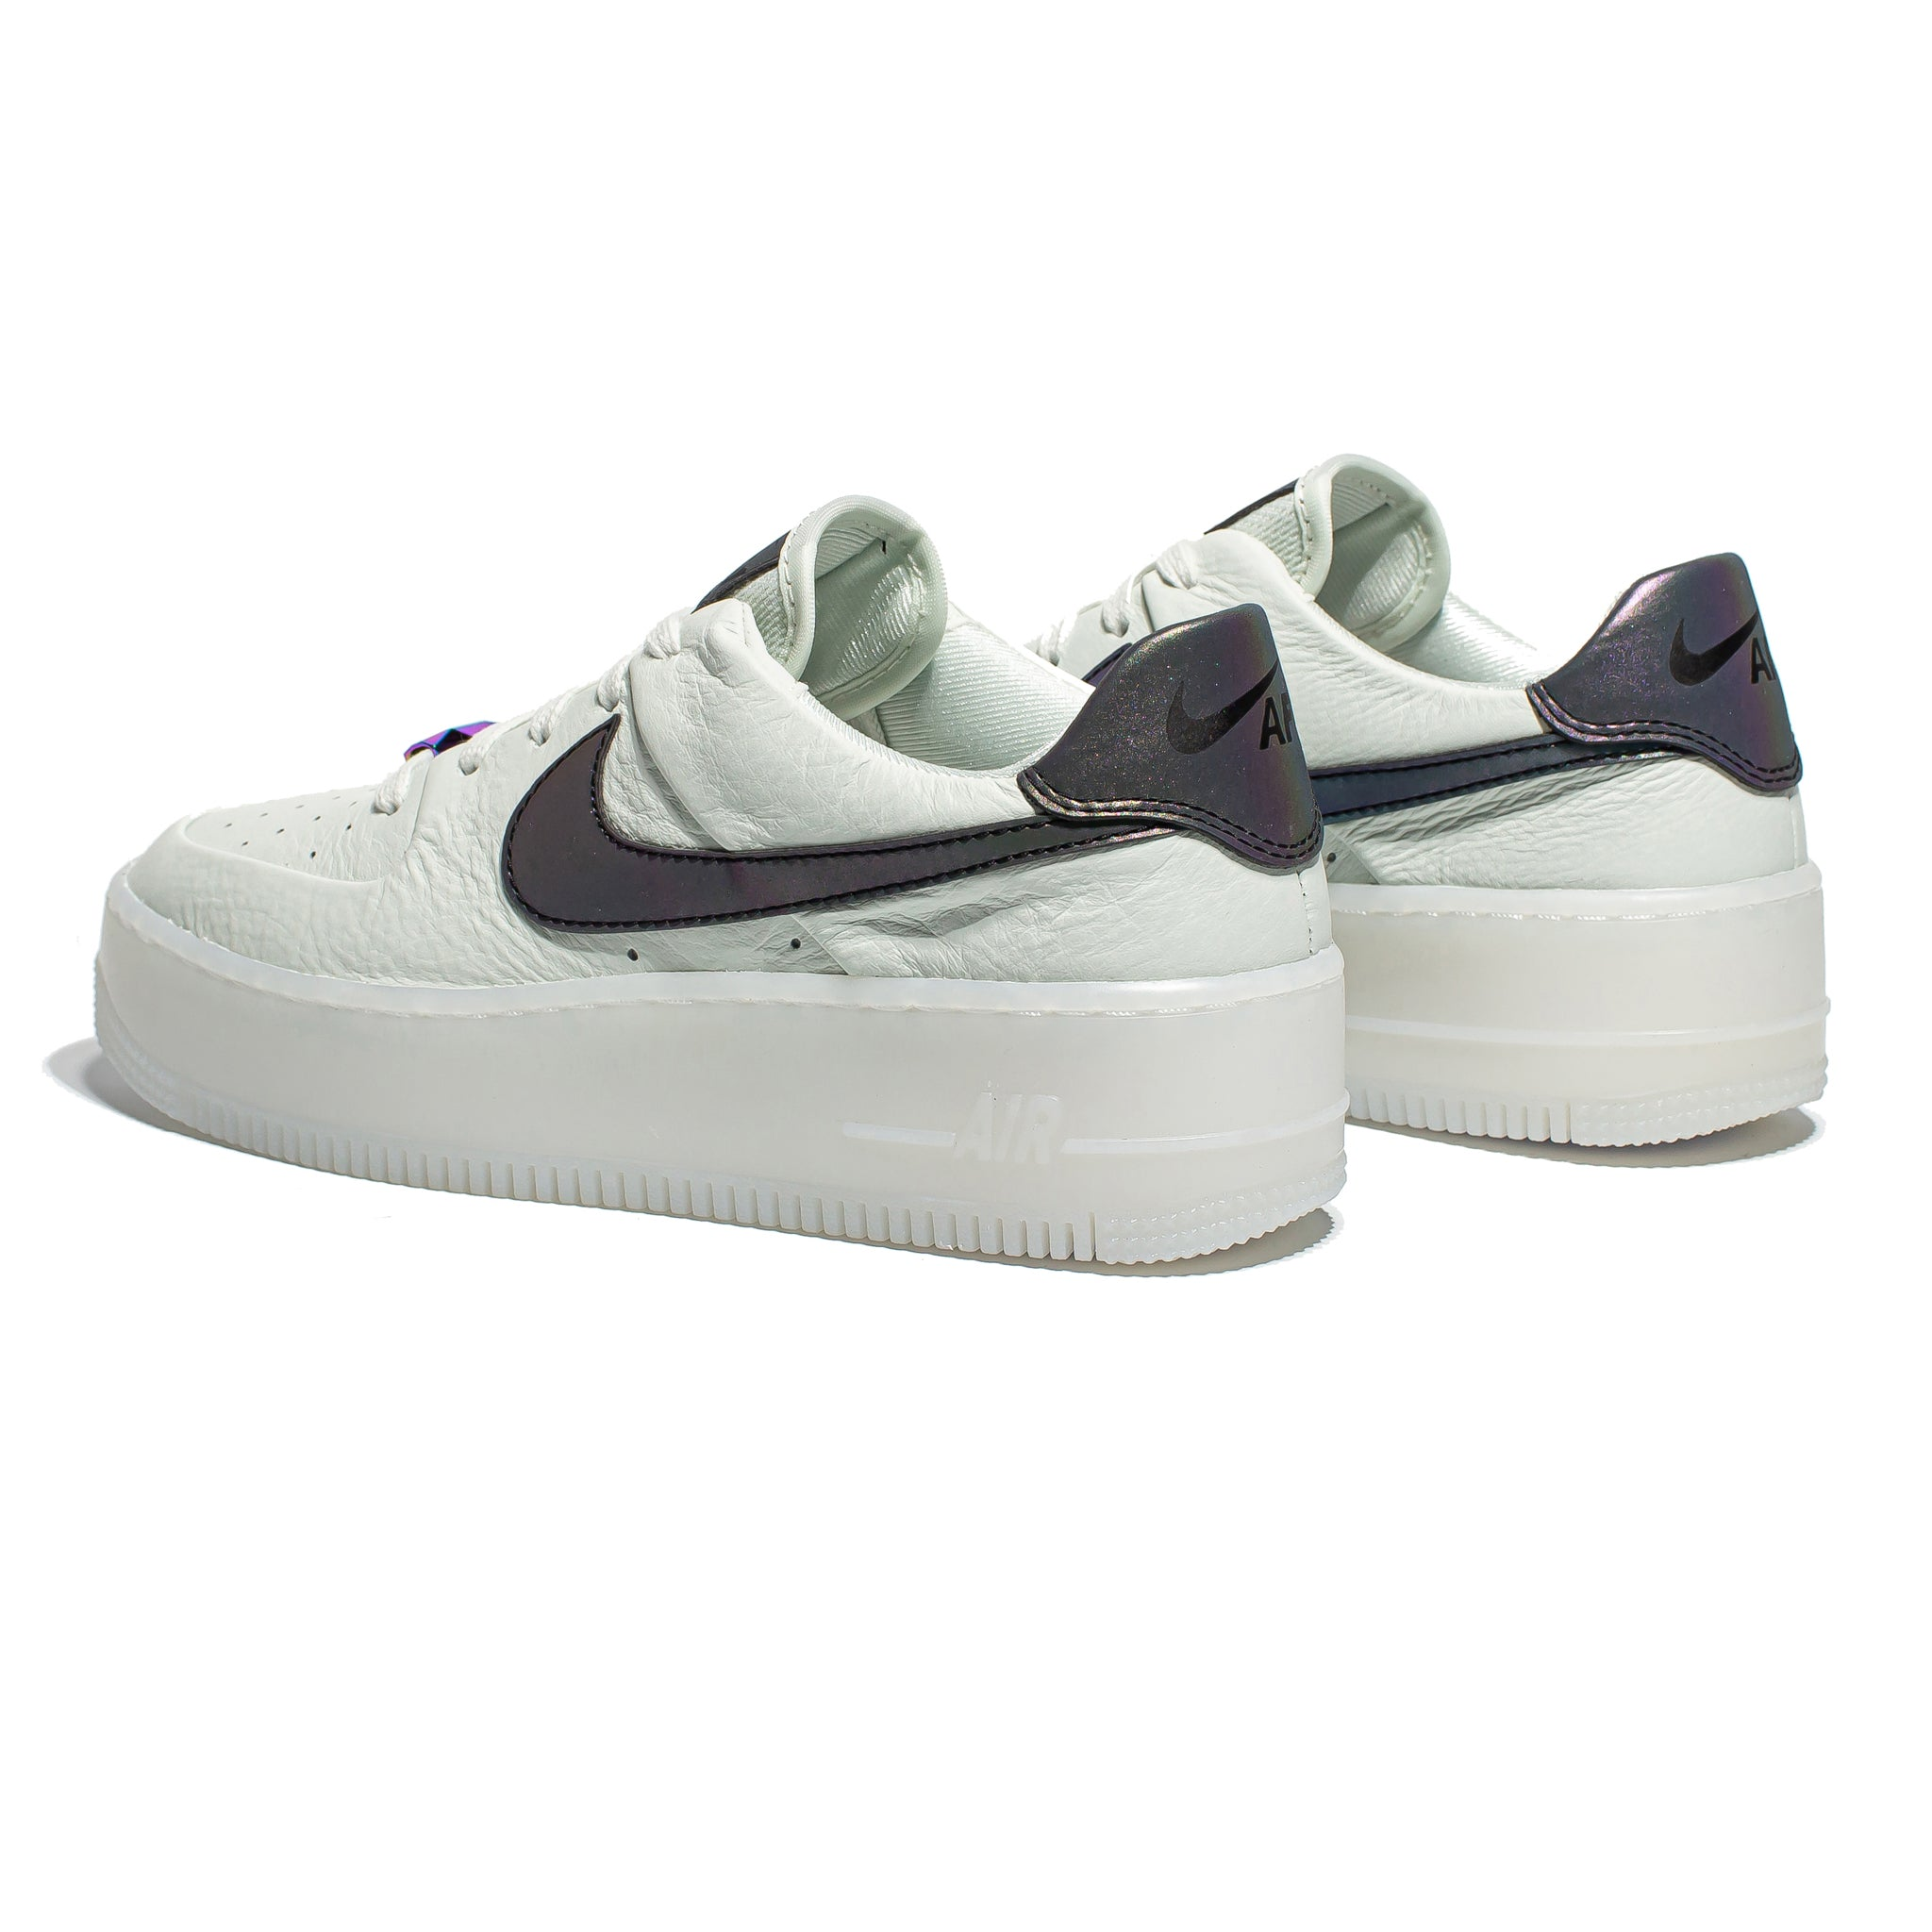 Nike Air Force 1 Sage Low 'Spruce/Aura'